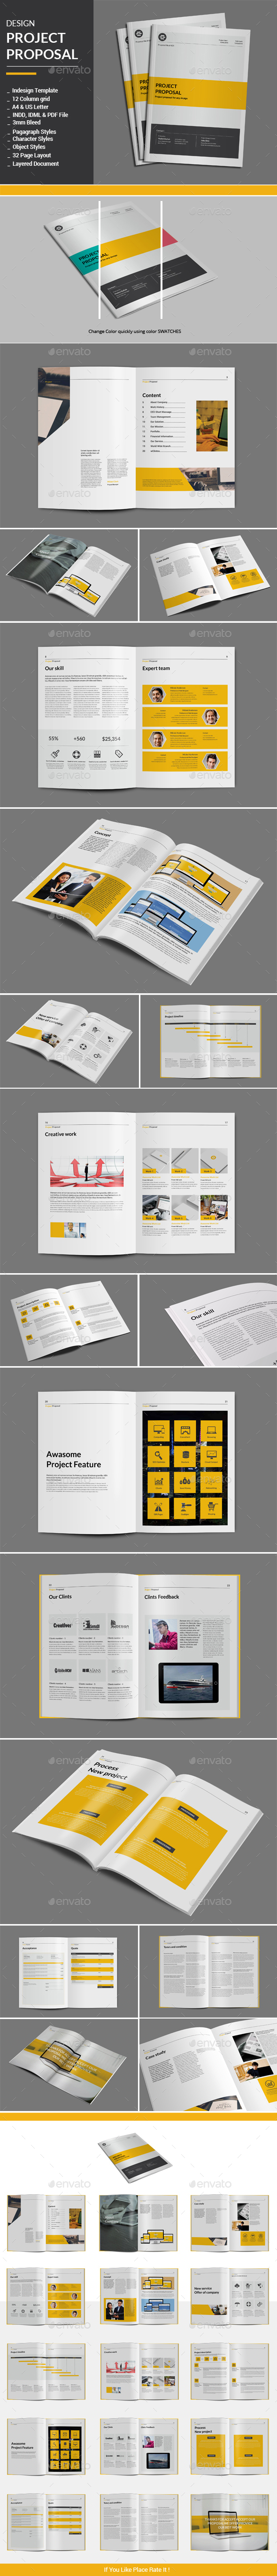 Design Project Proposal Template - Proposals & Invoices Stationery